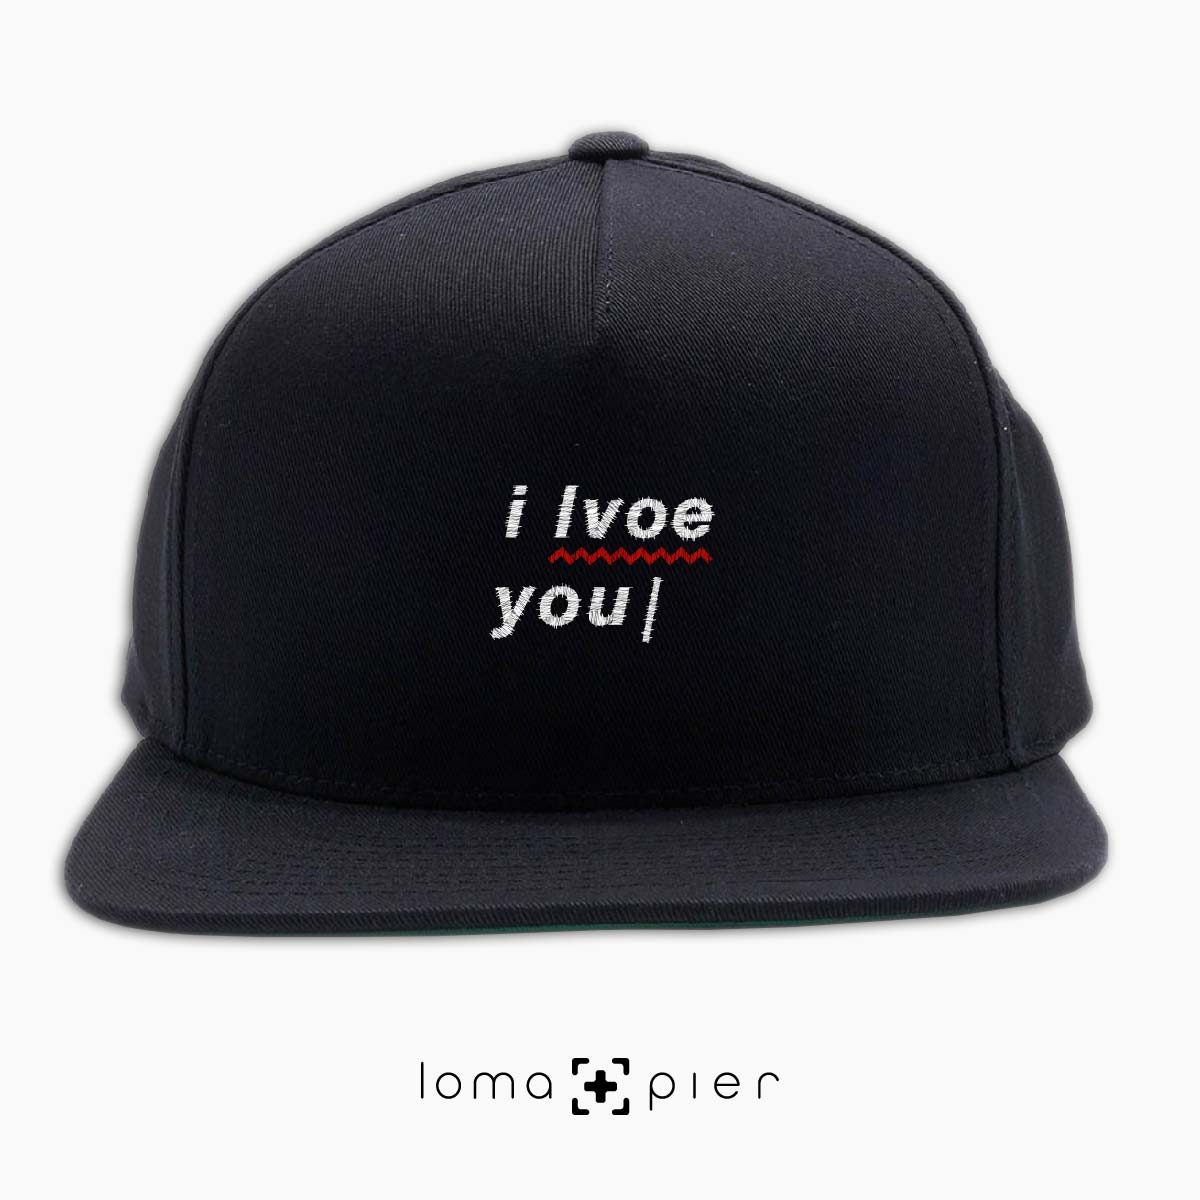 I LVOE YOU typography embroidered on a black classic snapback hat with white thread by loma+pier hat store